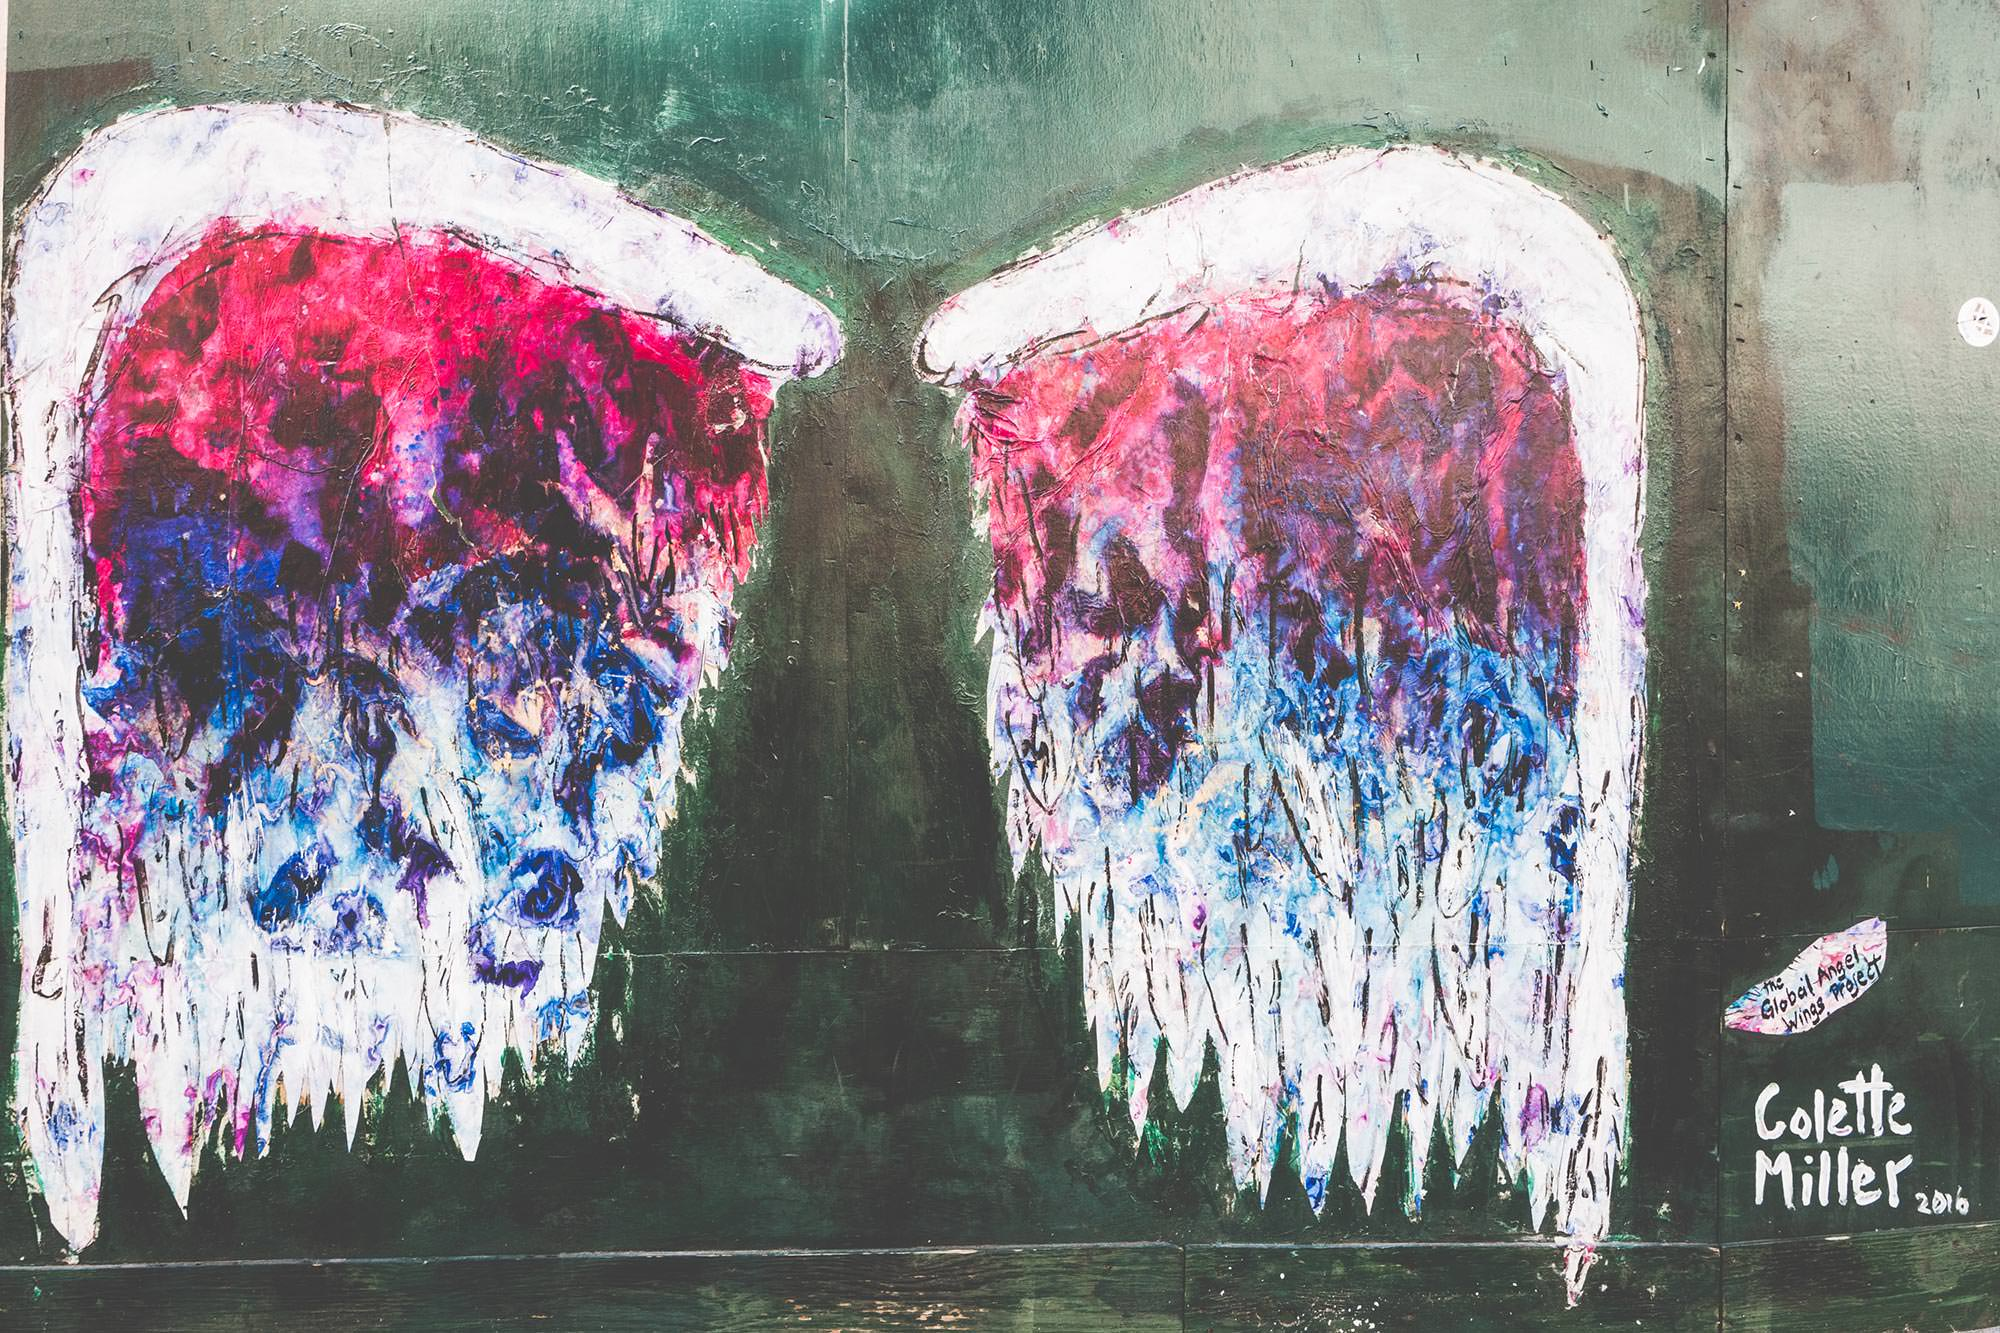 Wings from Colette Miller